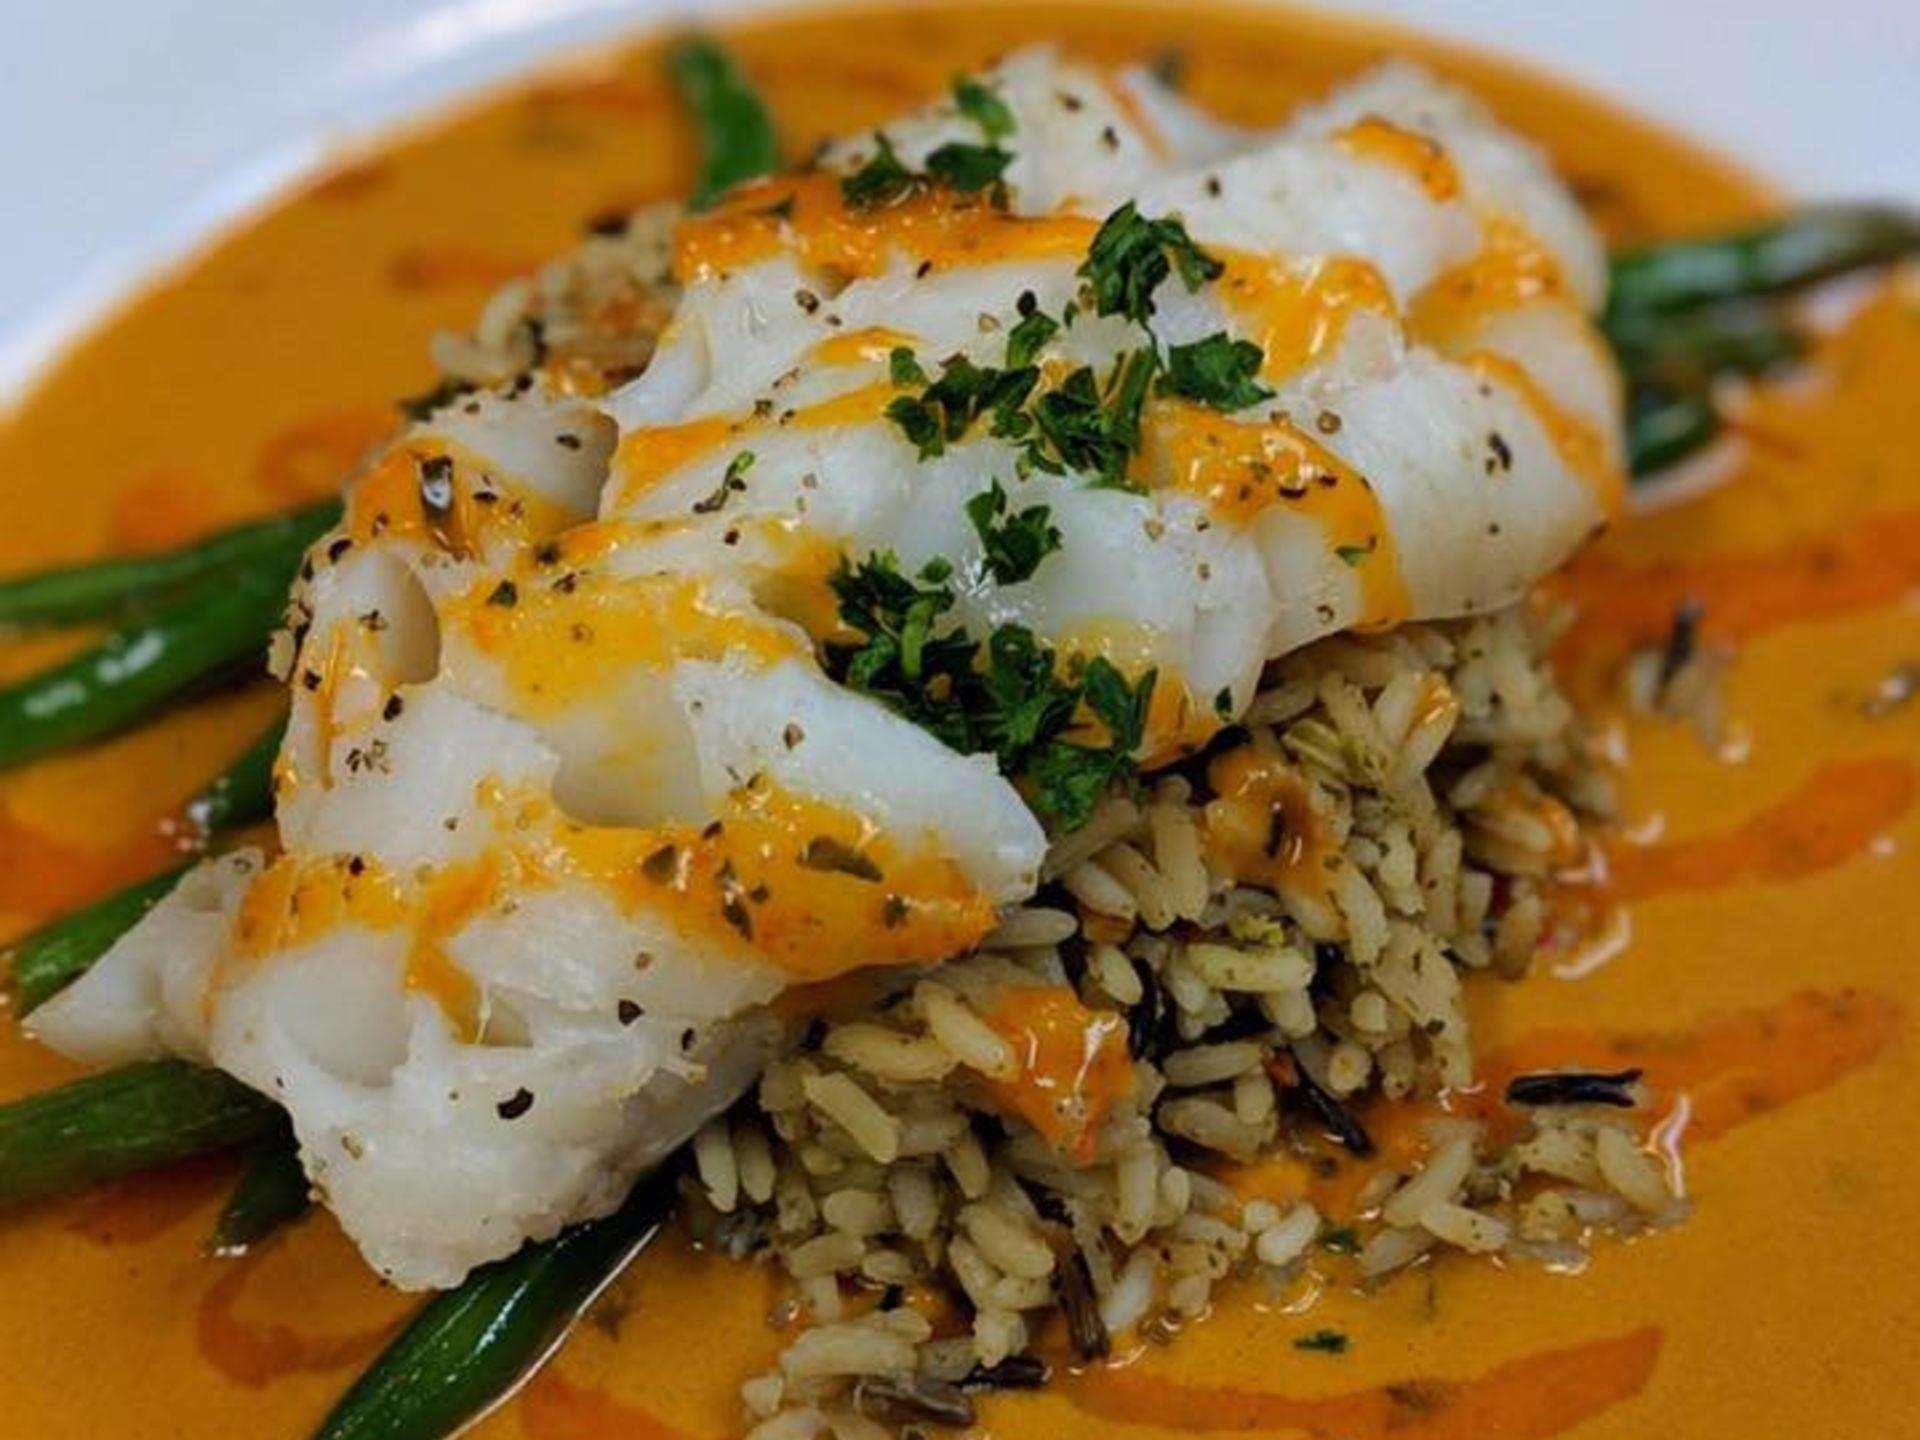 Cod with spicy sauce over rice pilaf and string beans